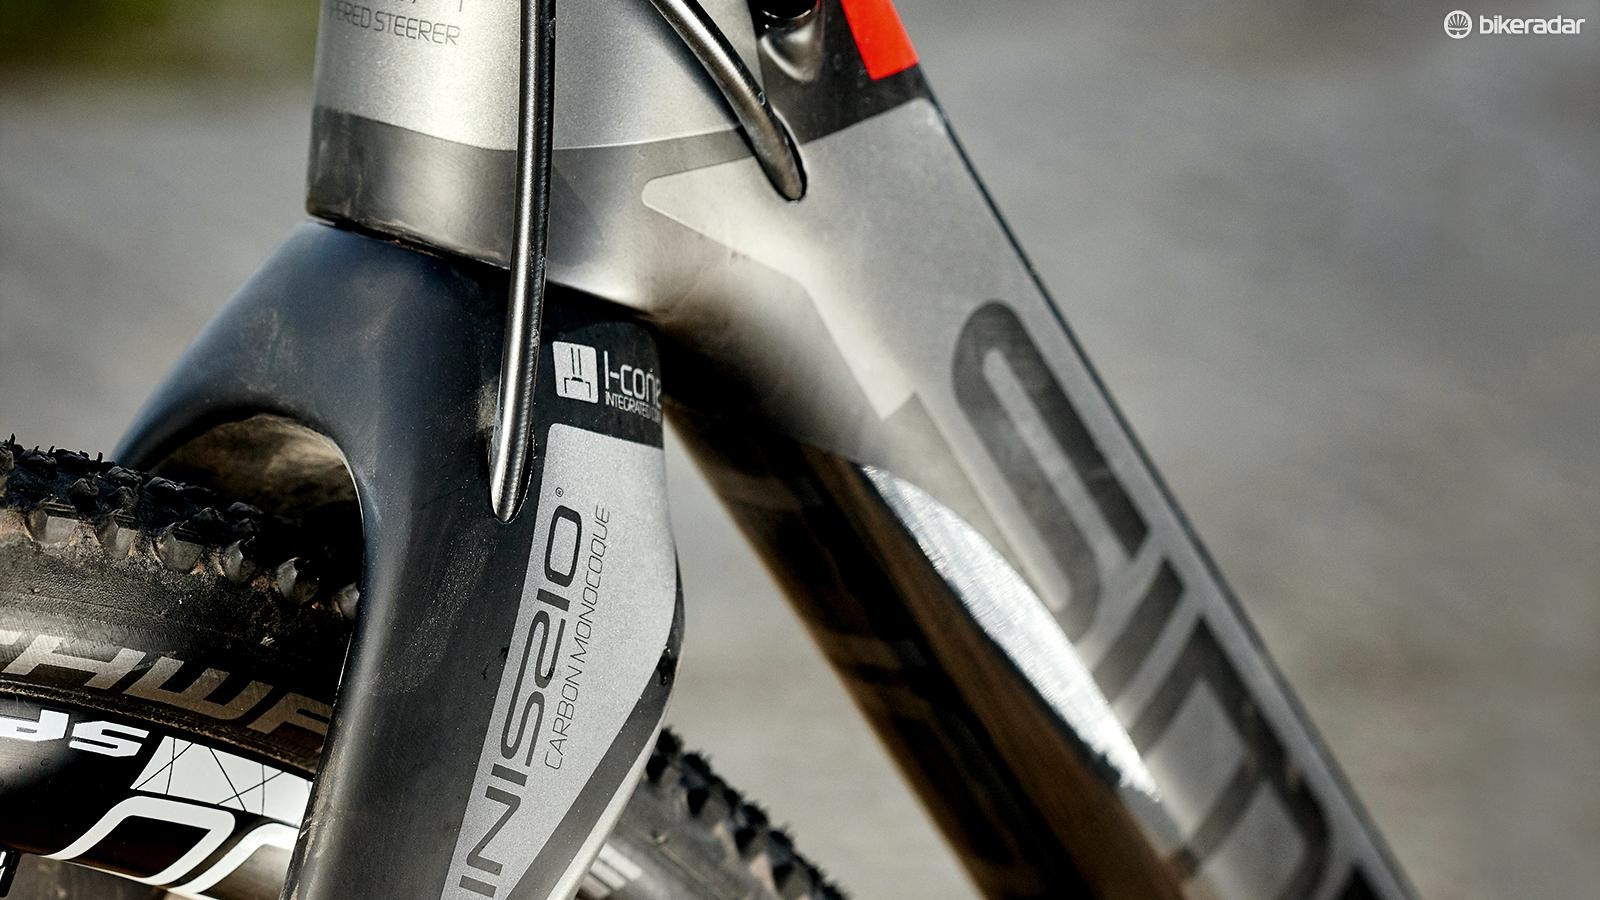 Carbon frame and fork create a lightweight ride that is tough enough for cyclocross duties